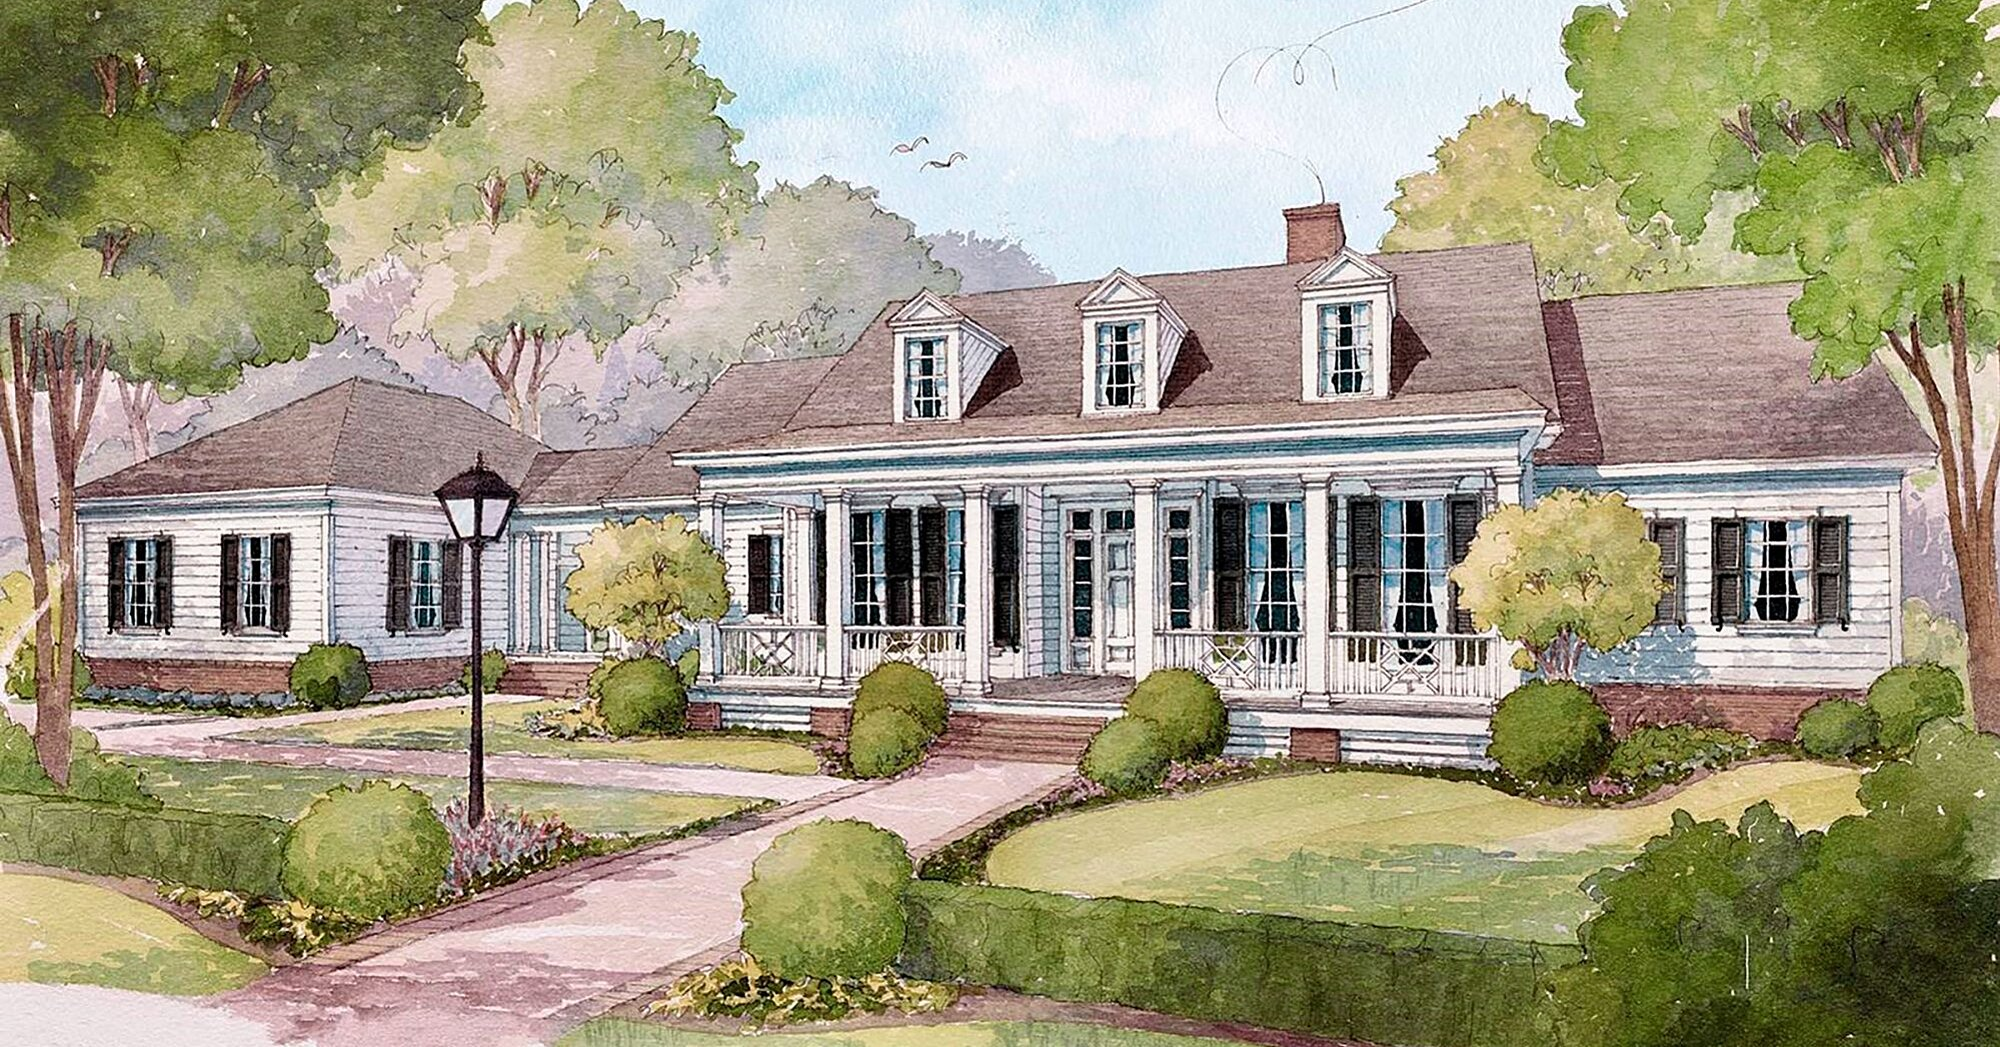 We Love a Classic: House Plan 2049 Is Perfect for Every Stage of Life